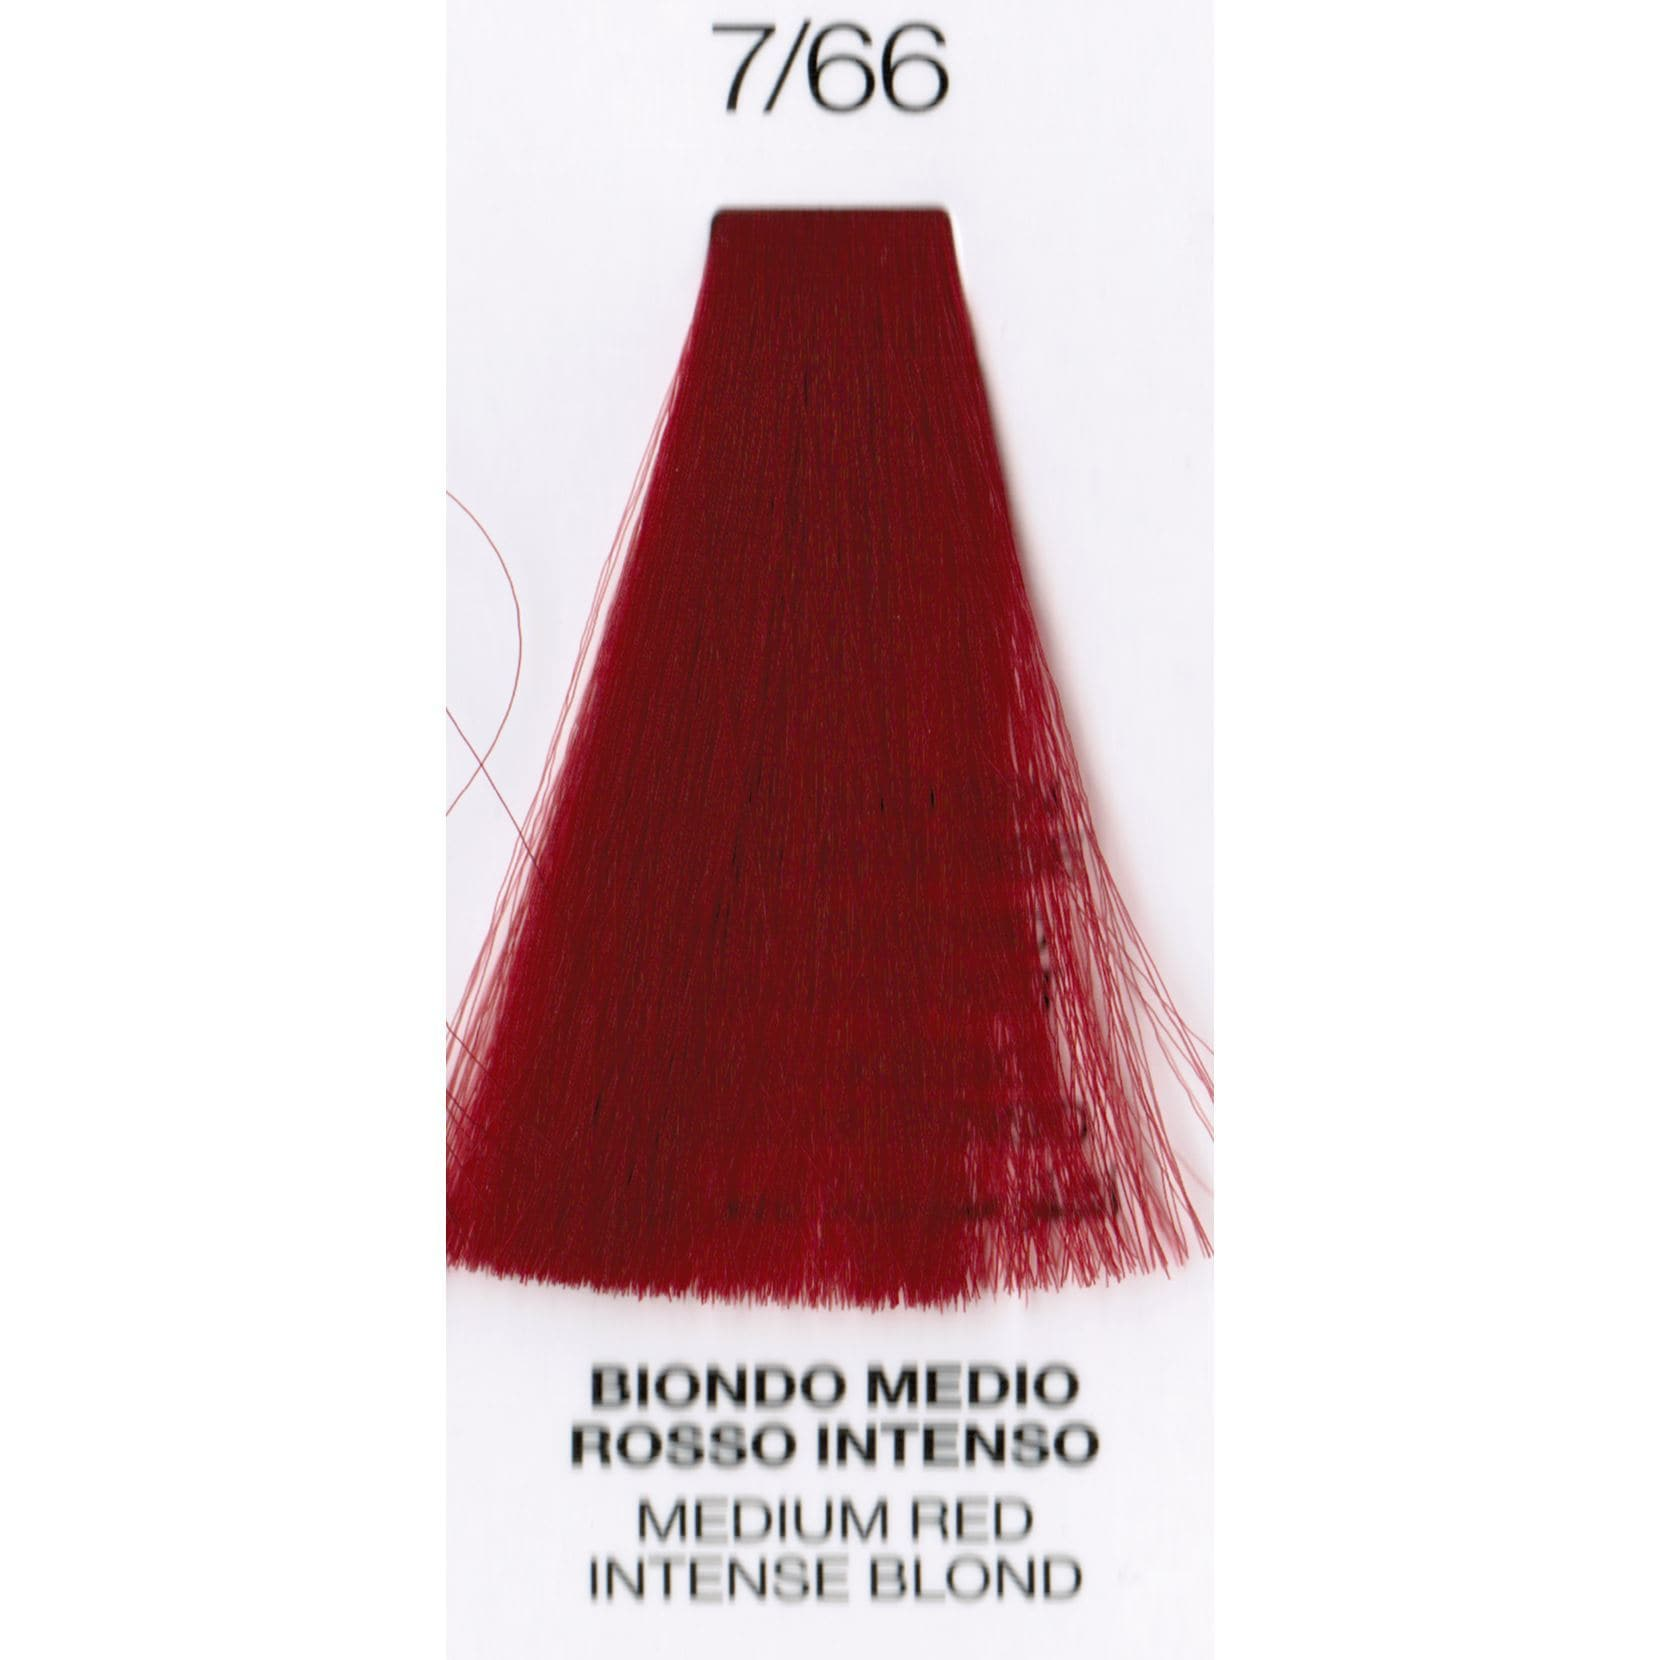 7/66 Medium Red Blonde Intense | Purity | Ammonia-Free Permanent Hair Color | OYSTER | SHSalons.com